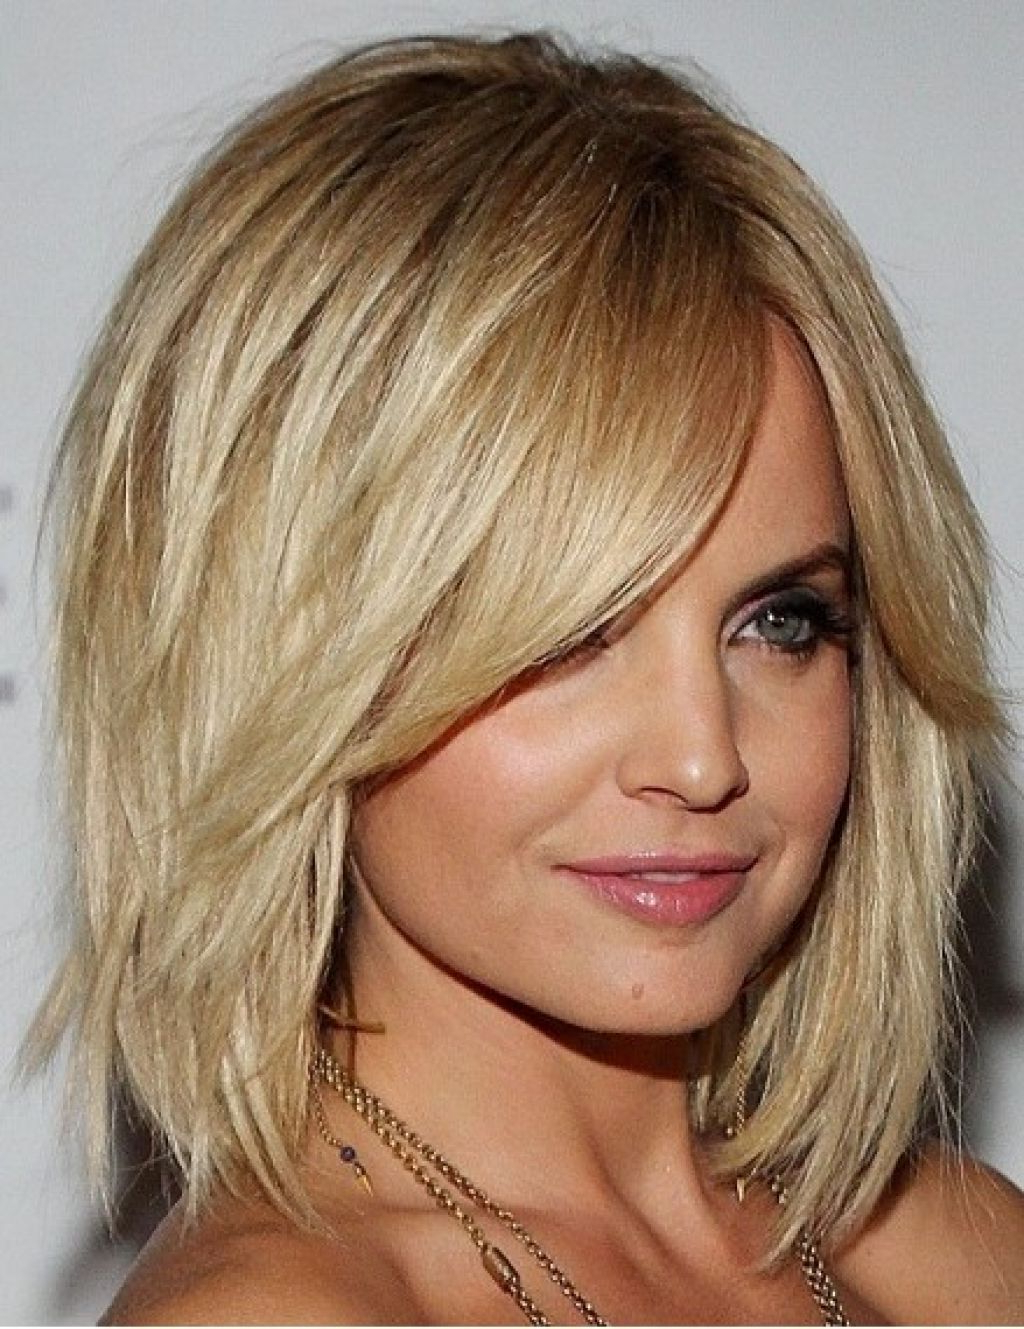 Everlasting With Regard To Widely Used Shoulder Length Layered Hairstyles (View 3 of 20)